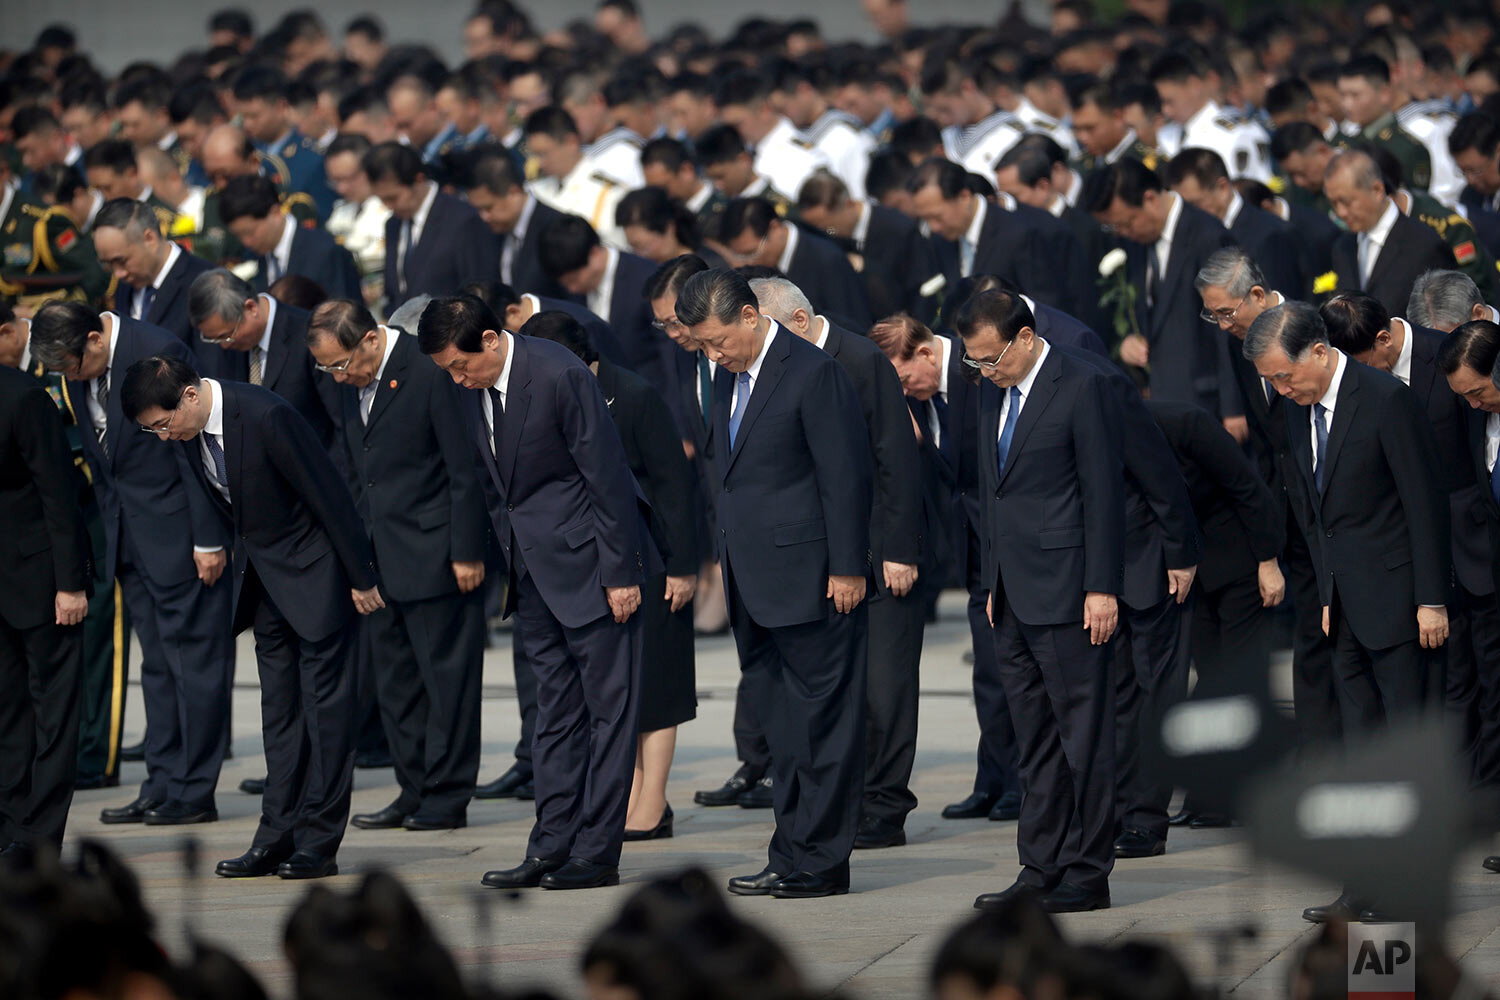 Chinese President Xi Jinping, center, and other officials bow during a ceremony to mark Martyr's Day at Tiananmen Square in Beijing, Monday, Sept. 30, 2019. Xi led other top officials in paying respects to the founder of the communist state Mao Zedong ahead of a massive celebration of the People's Republic's 70th anniversary. (AP Photo/Mark Schiefelbein, Pool)